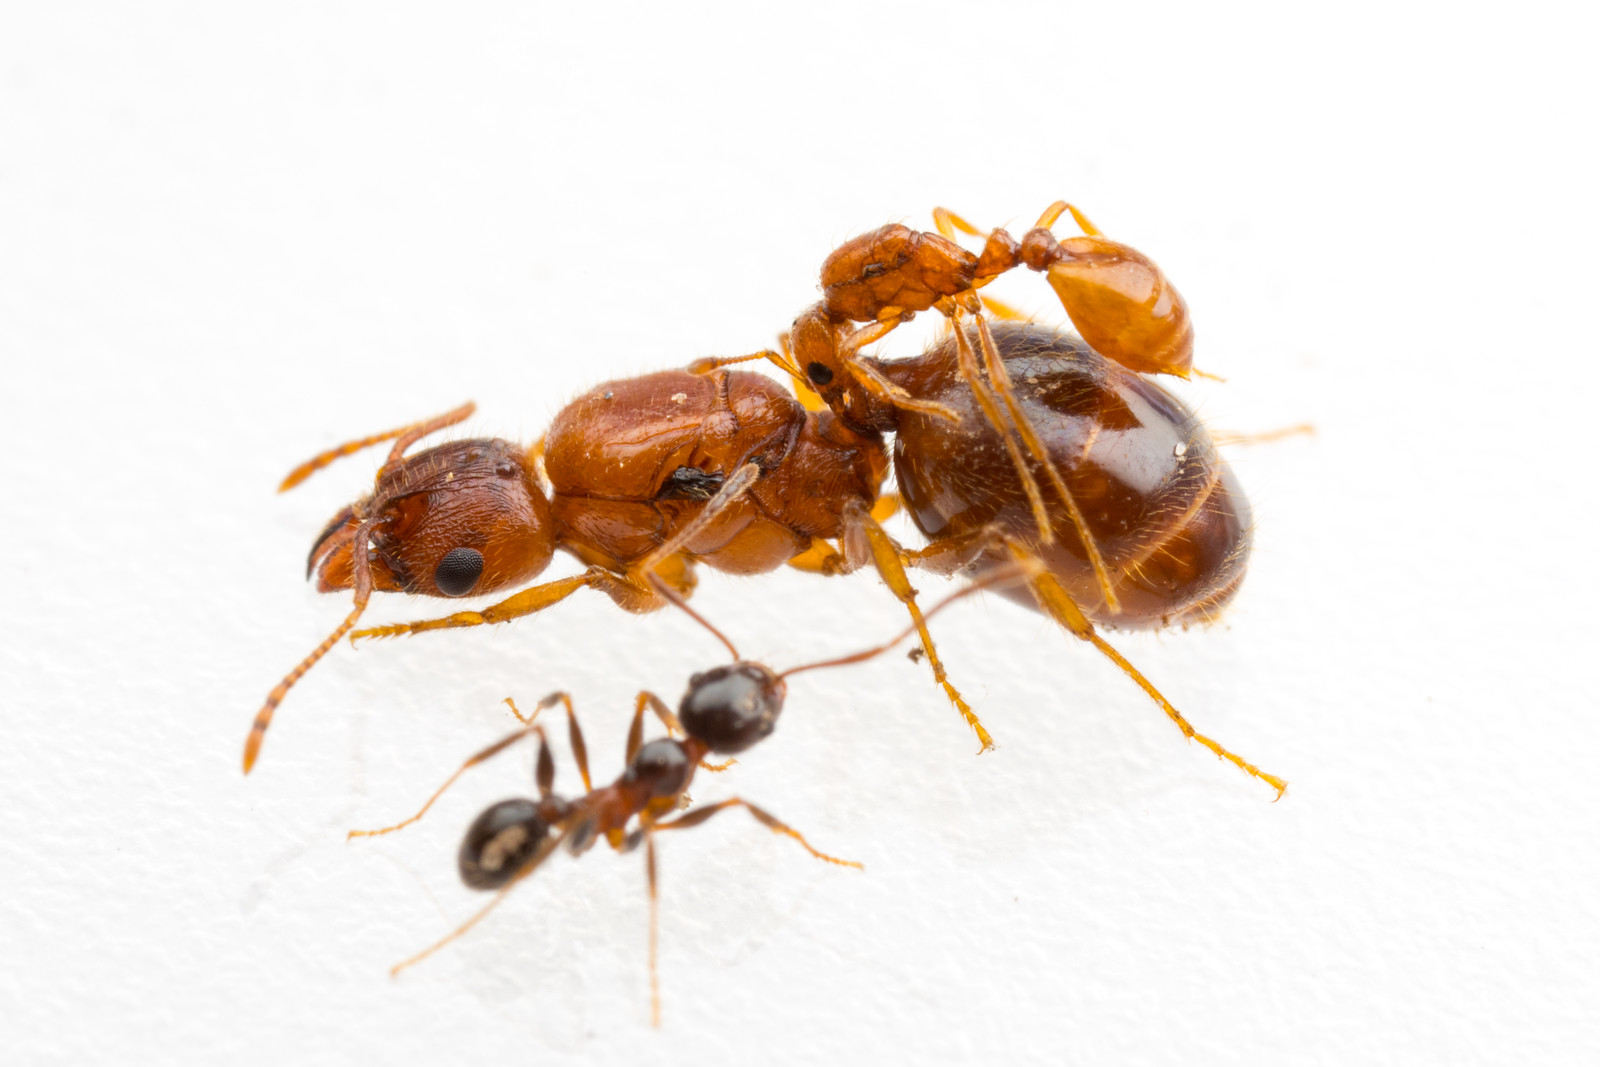 Dio ant'that hitch a ride on the largest ants found in Texas